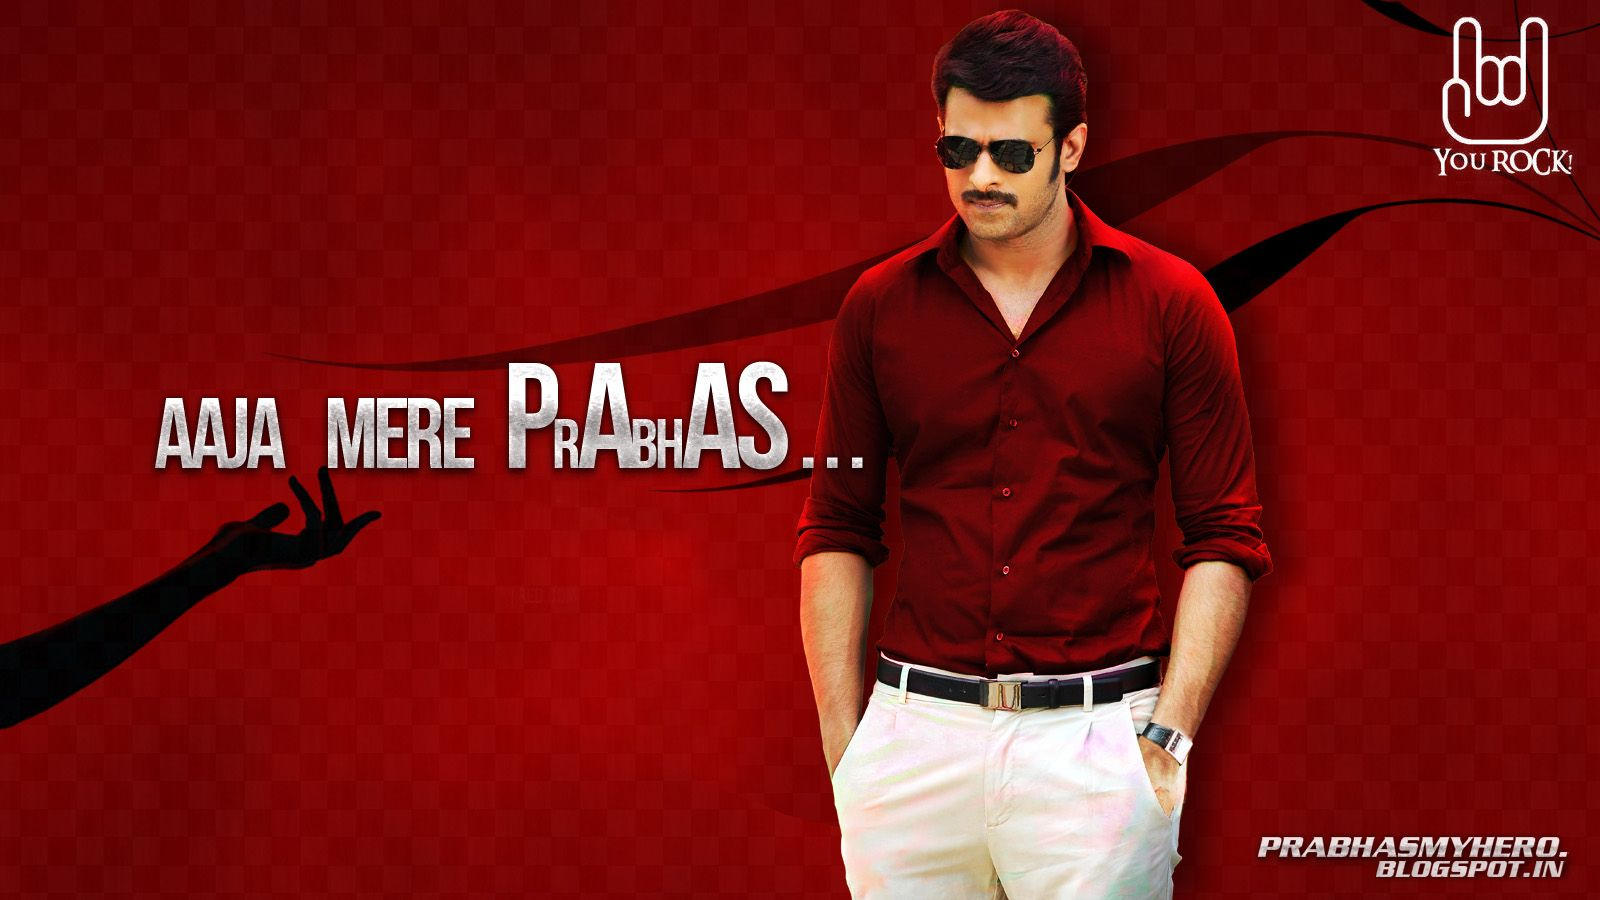 prabhas wallpapers high resolution and quality download | best games